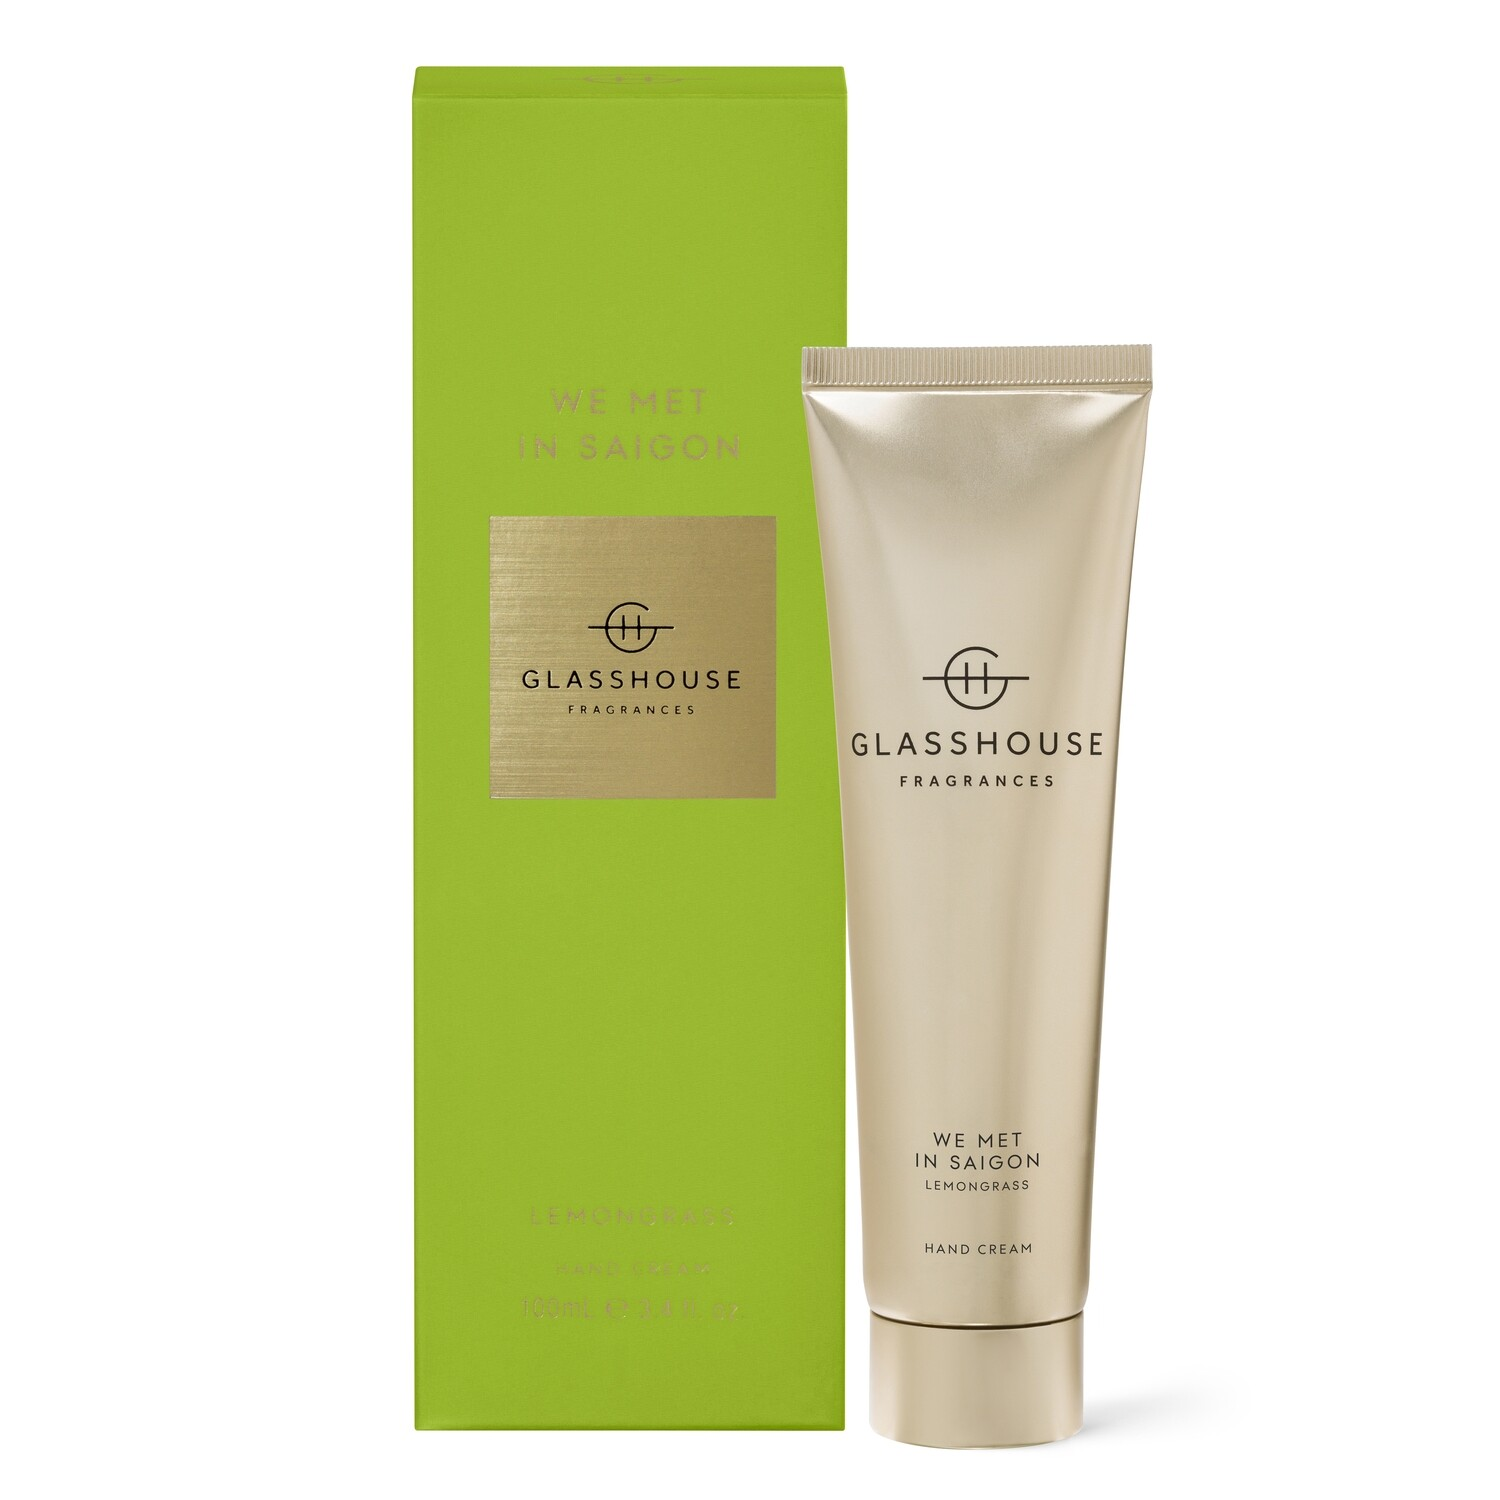 Glasshouse Handcream - We Met In Saigon